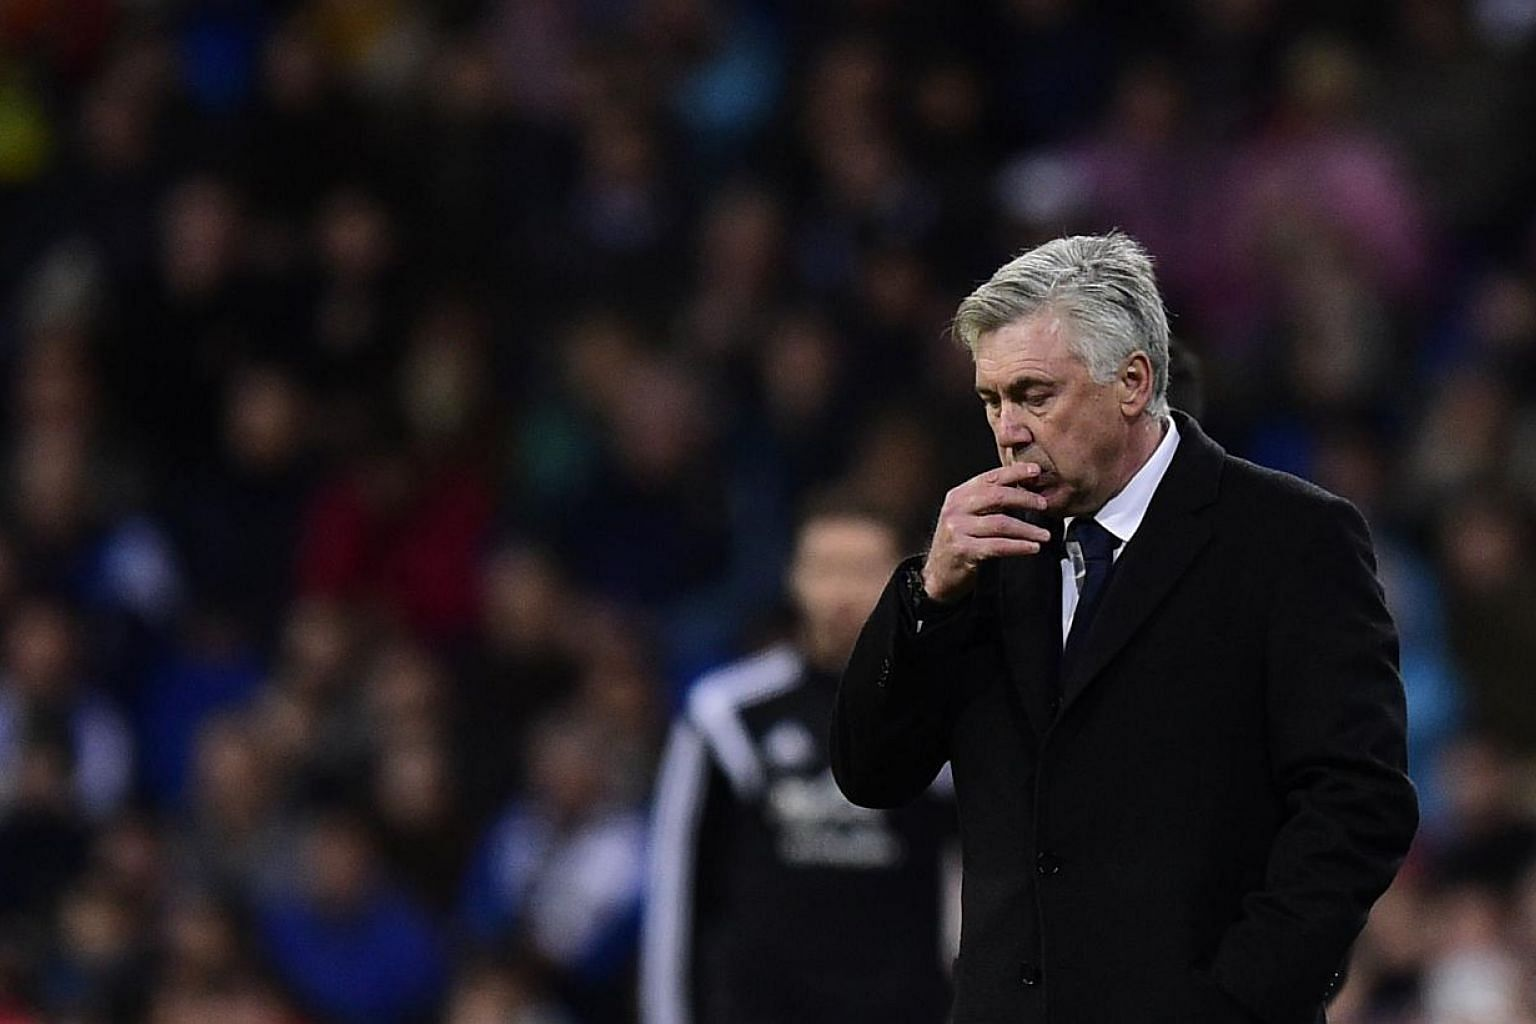 Carlo Ancelotti has been sacked by Real Madrid after the Italian coach failed to lead the team to a major trophy in a disappointing season for the Spanish football giants. -- PHOTO: AFP